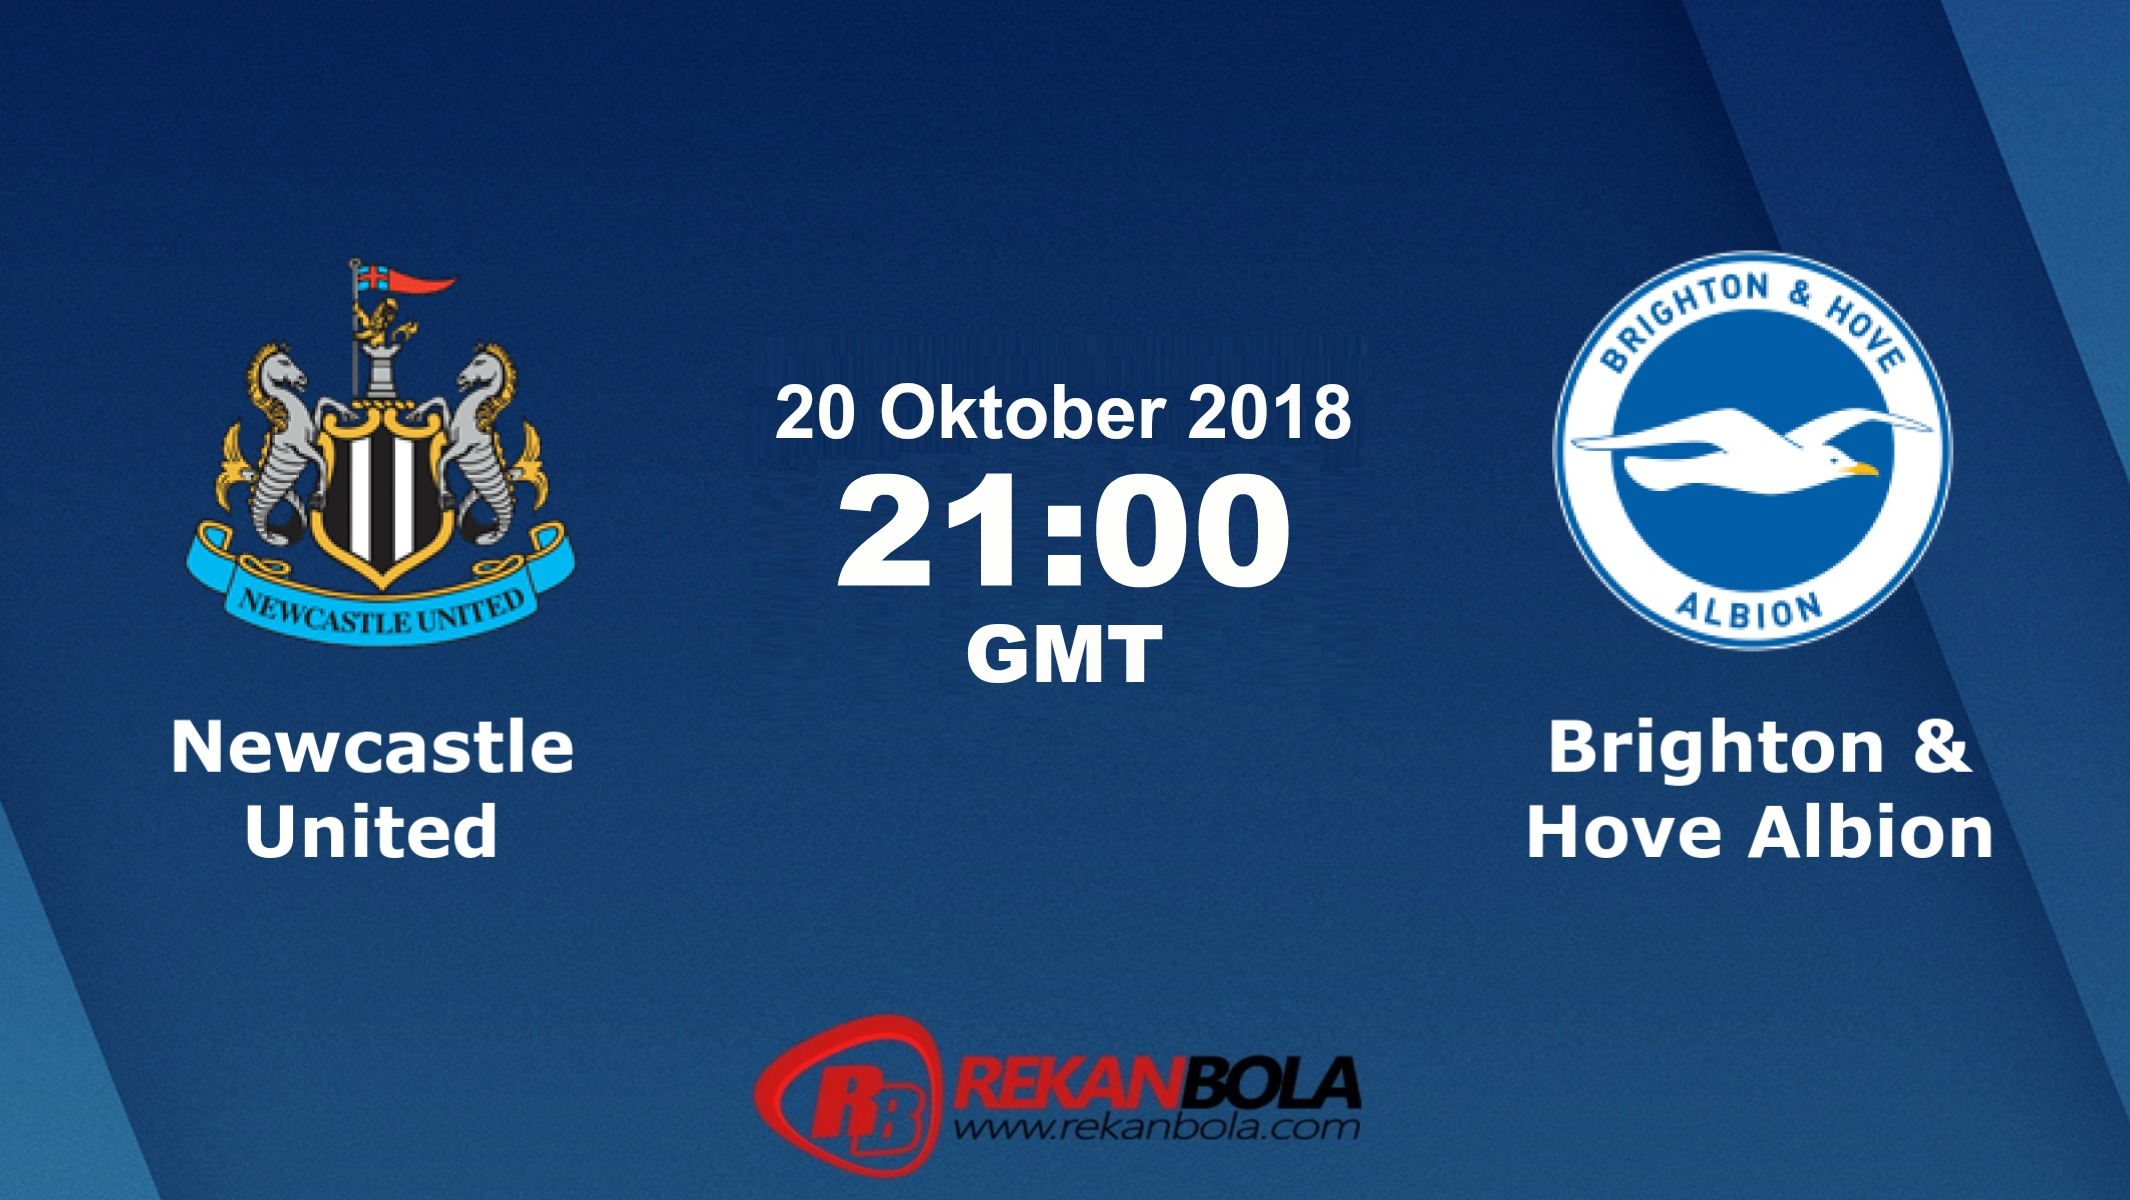 Nonton Siaran Live Streaming Newcastle Vs Brighton 20 Oktober 2018